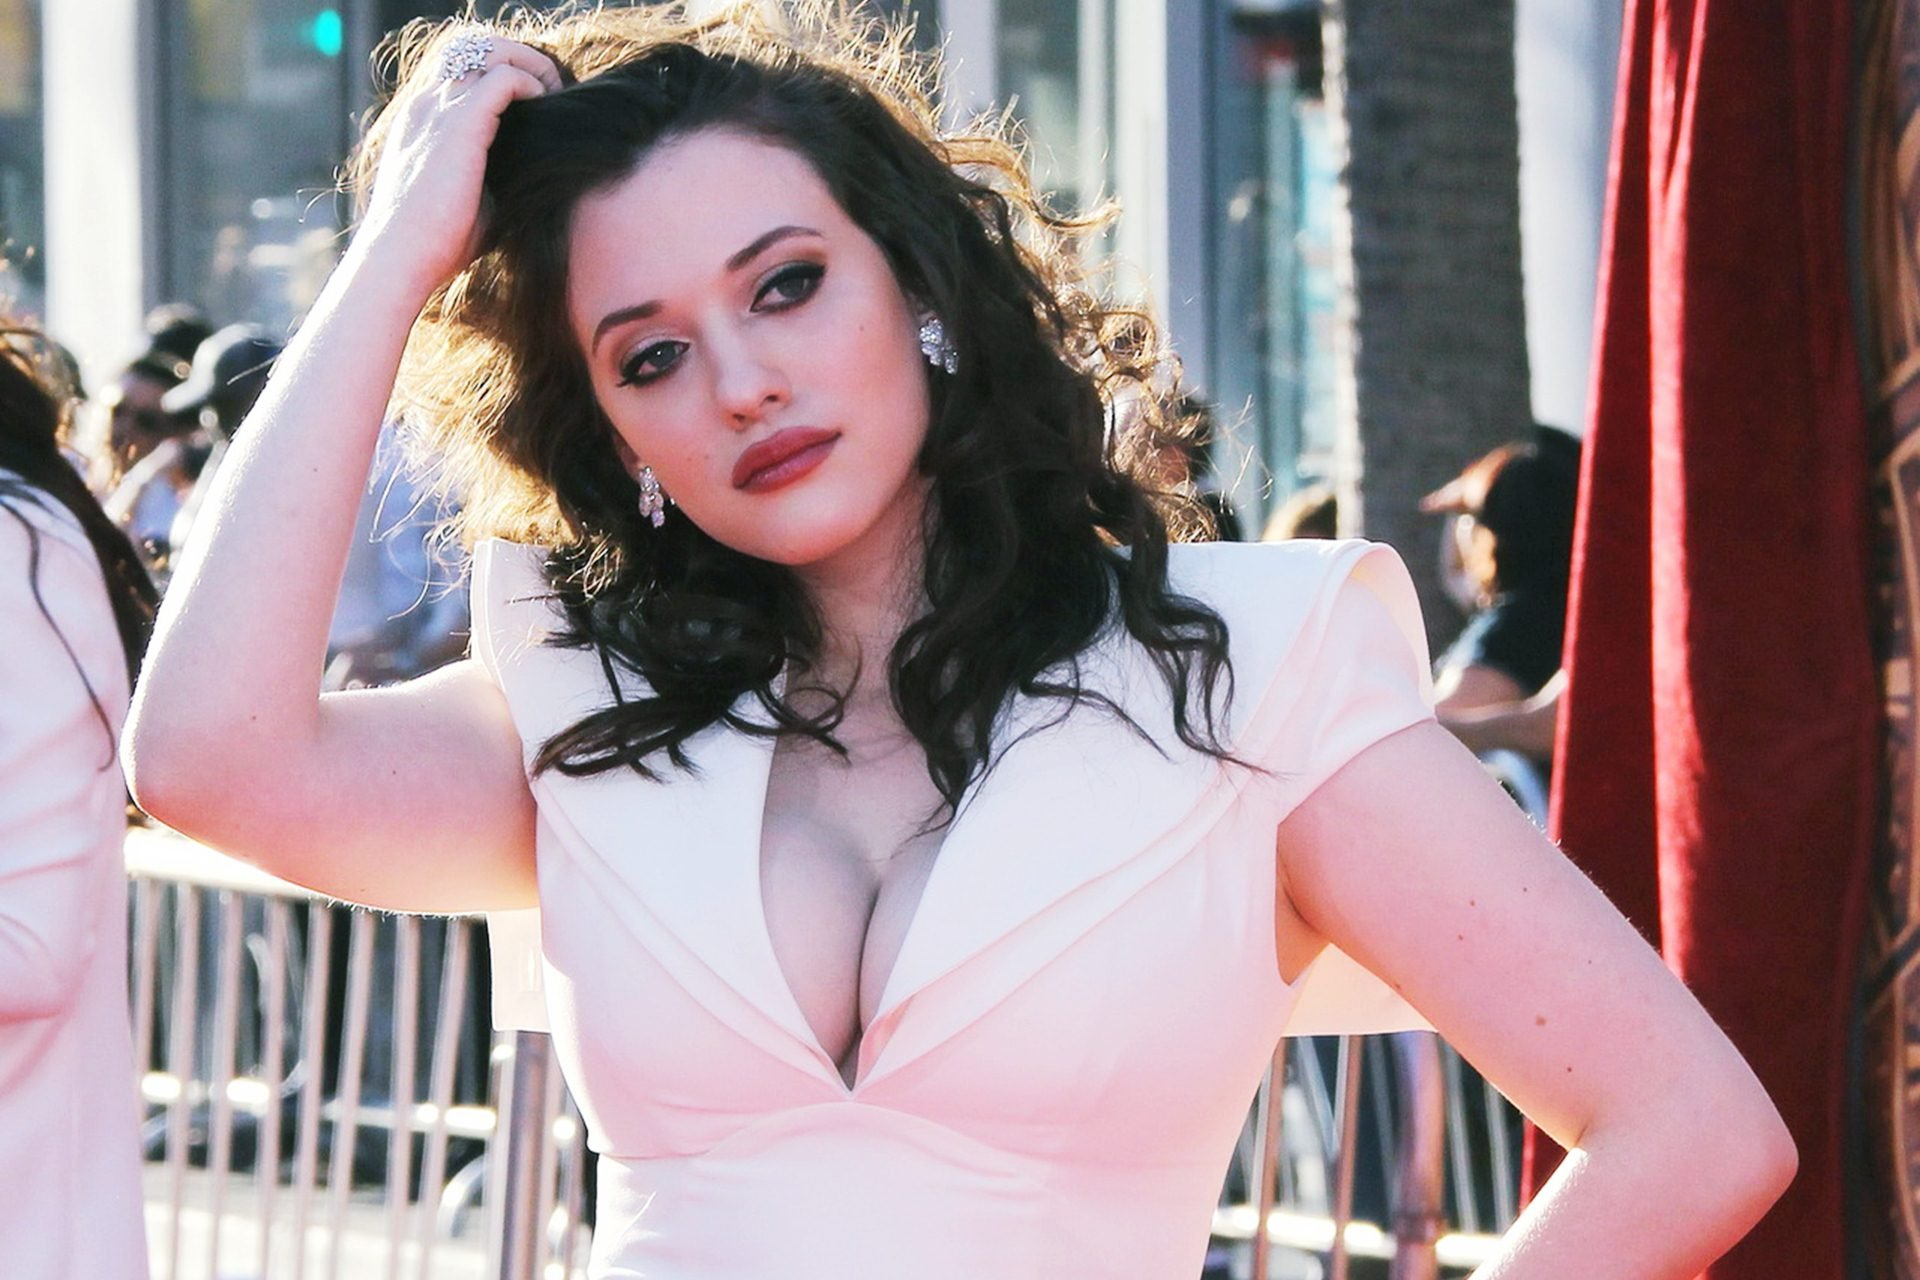 2 BROKE GIRLS comedy sitcom series babe (28)